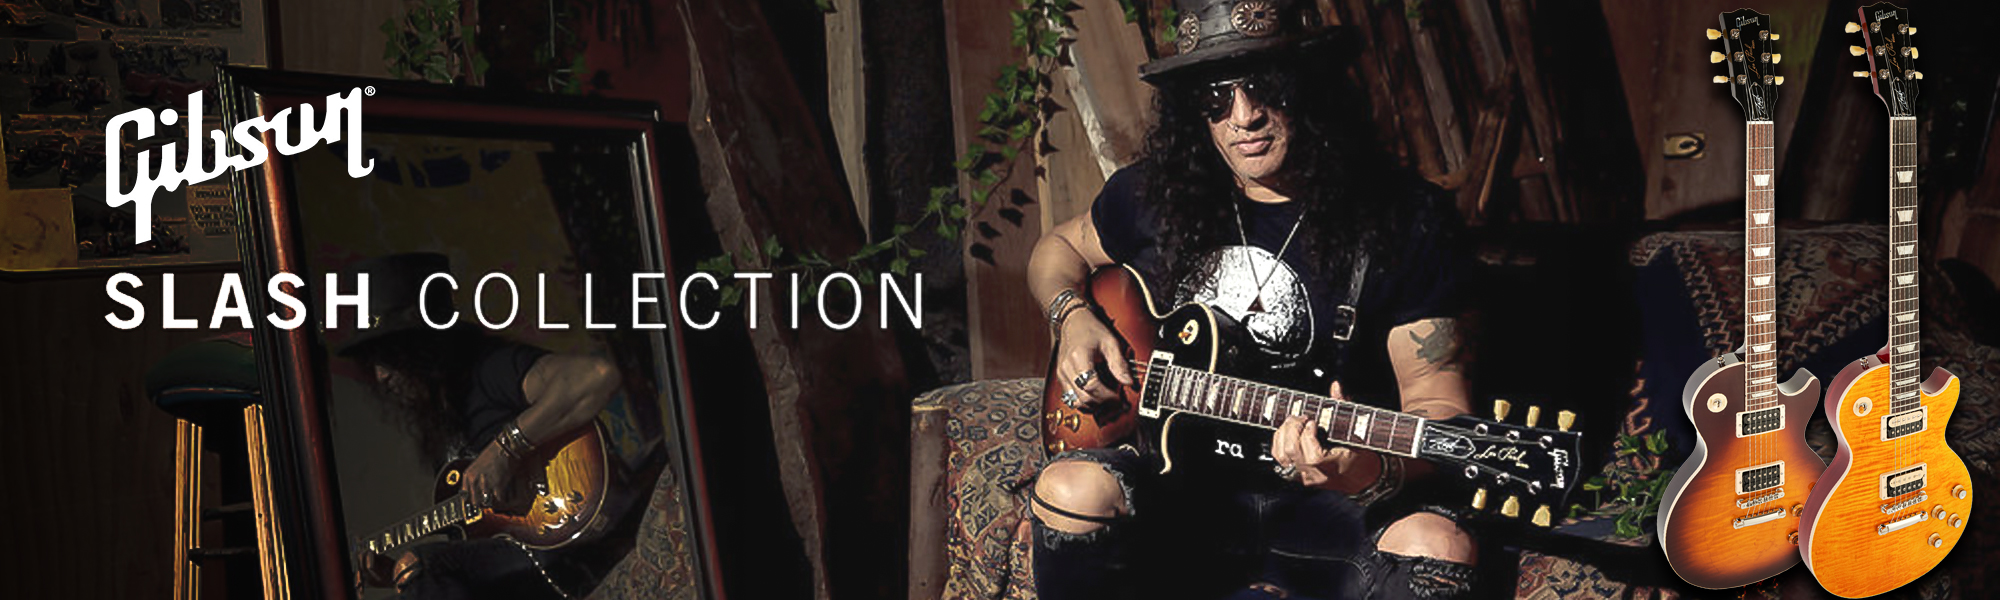 Gibson slash collection 2020